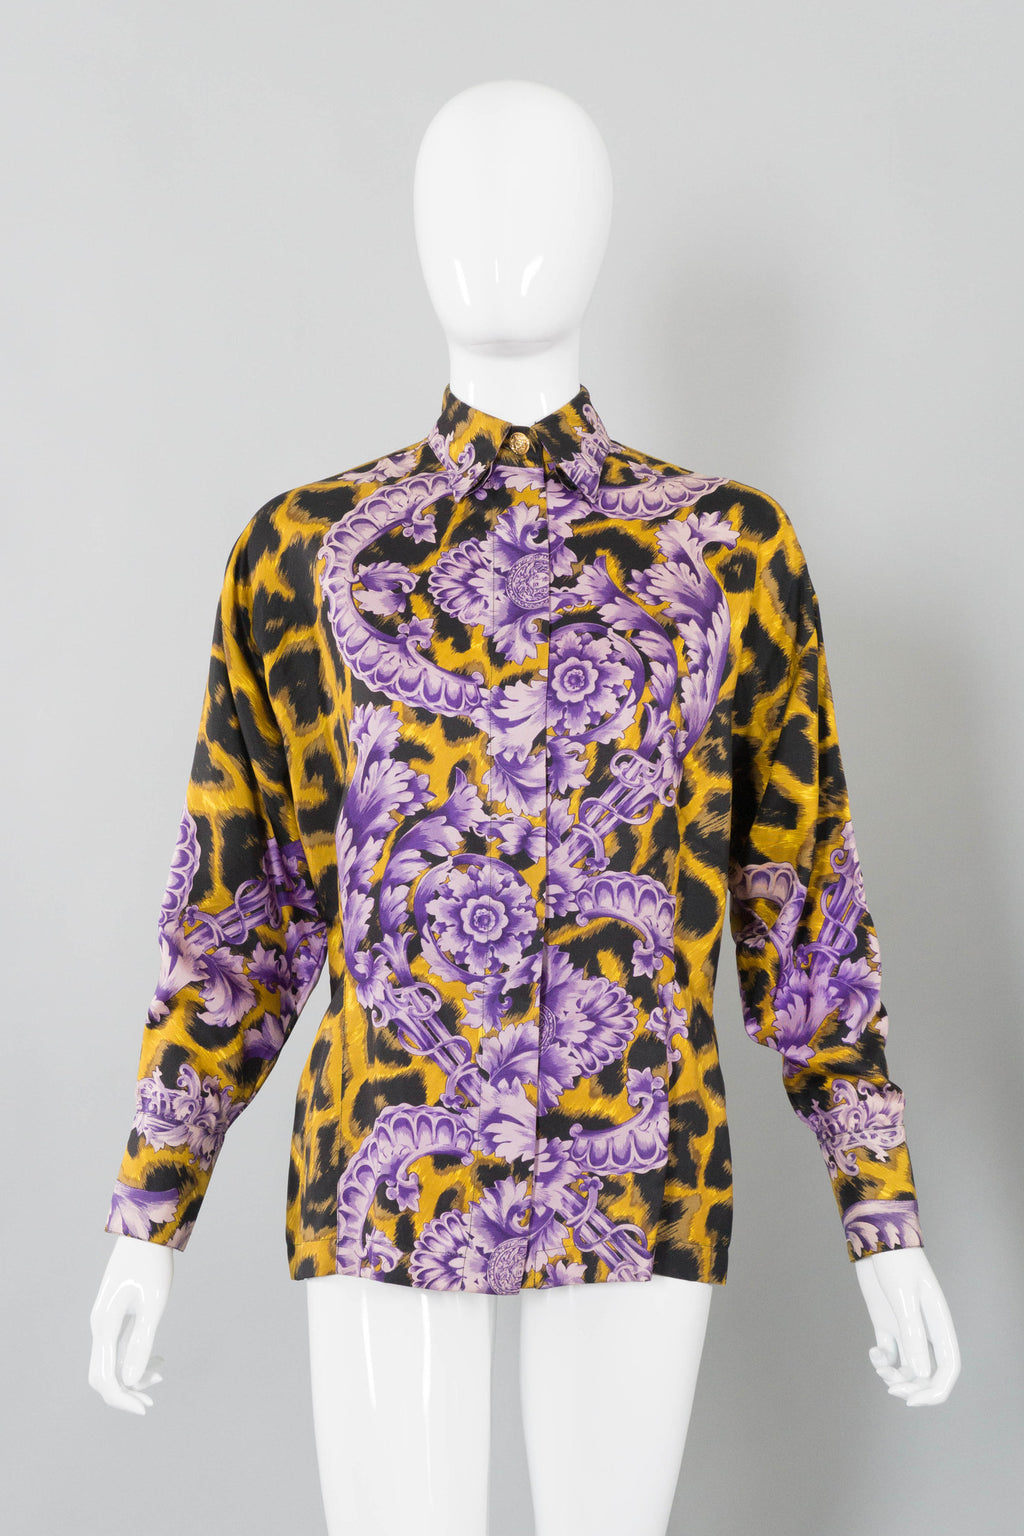 Gianni Versace Cheetah Flourish Print Blouse